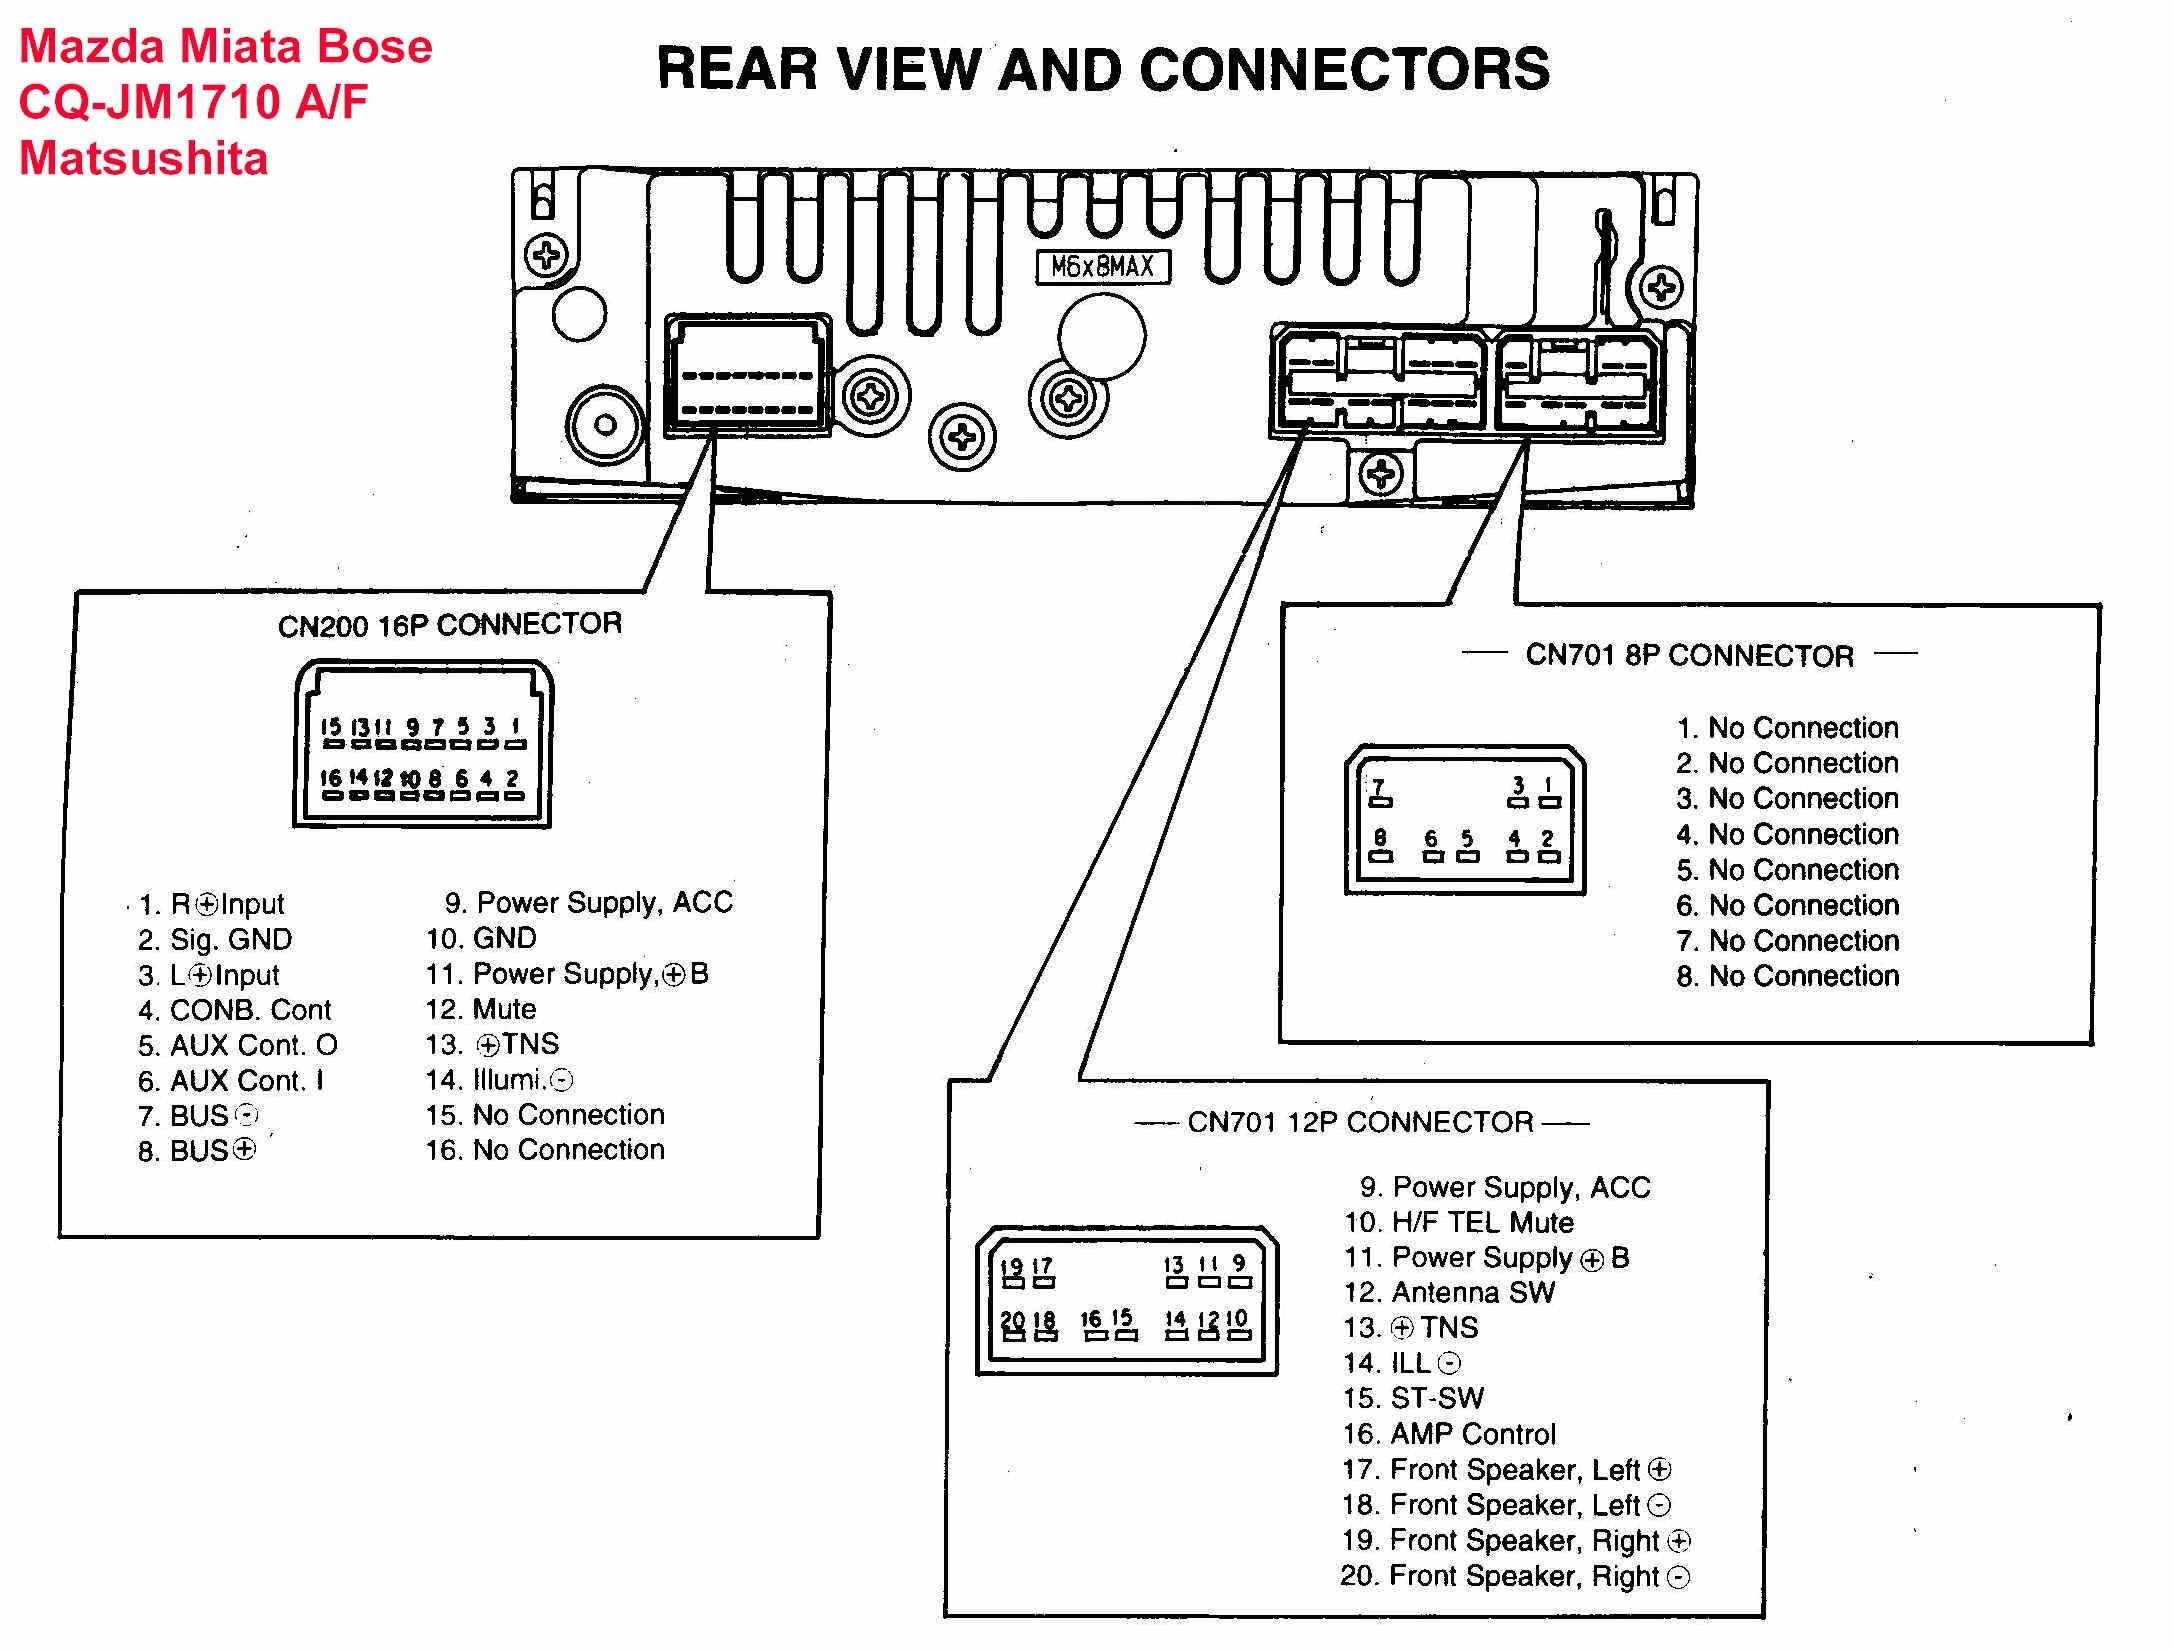 1994 miata radio wiring diagram basic wiring diagram u2022 rh rnetcomputer co Mazda MX-5 Engine Rebuild Mazda Engine Parts Diagram